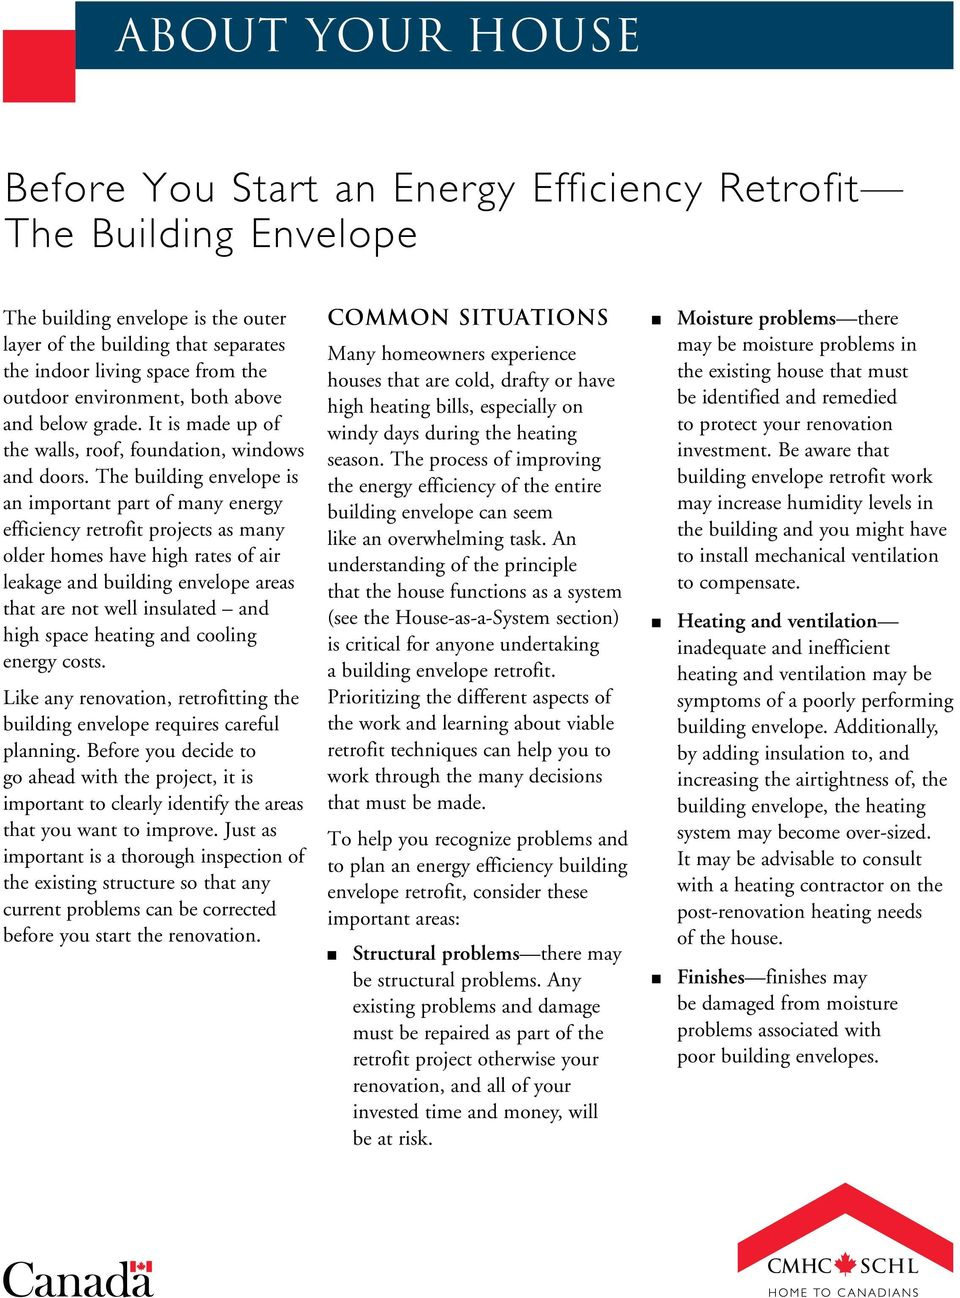 The building envelope is an important part of many energy efficiency retrofit projects as many older homes have high rates of air leakage and building envelope areas that are not well insulated and